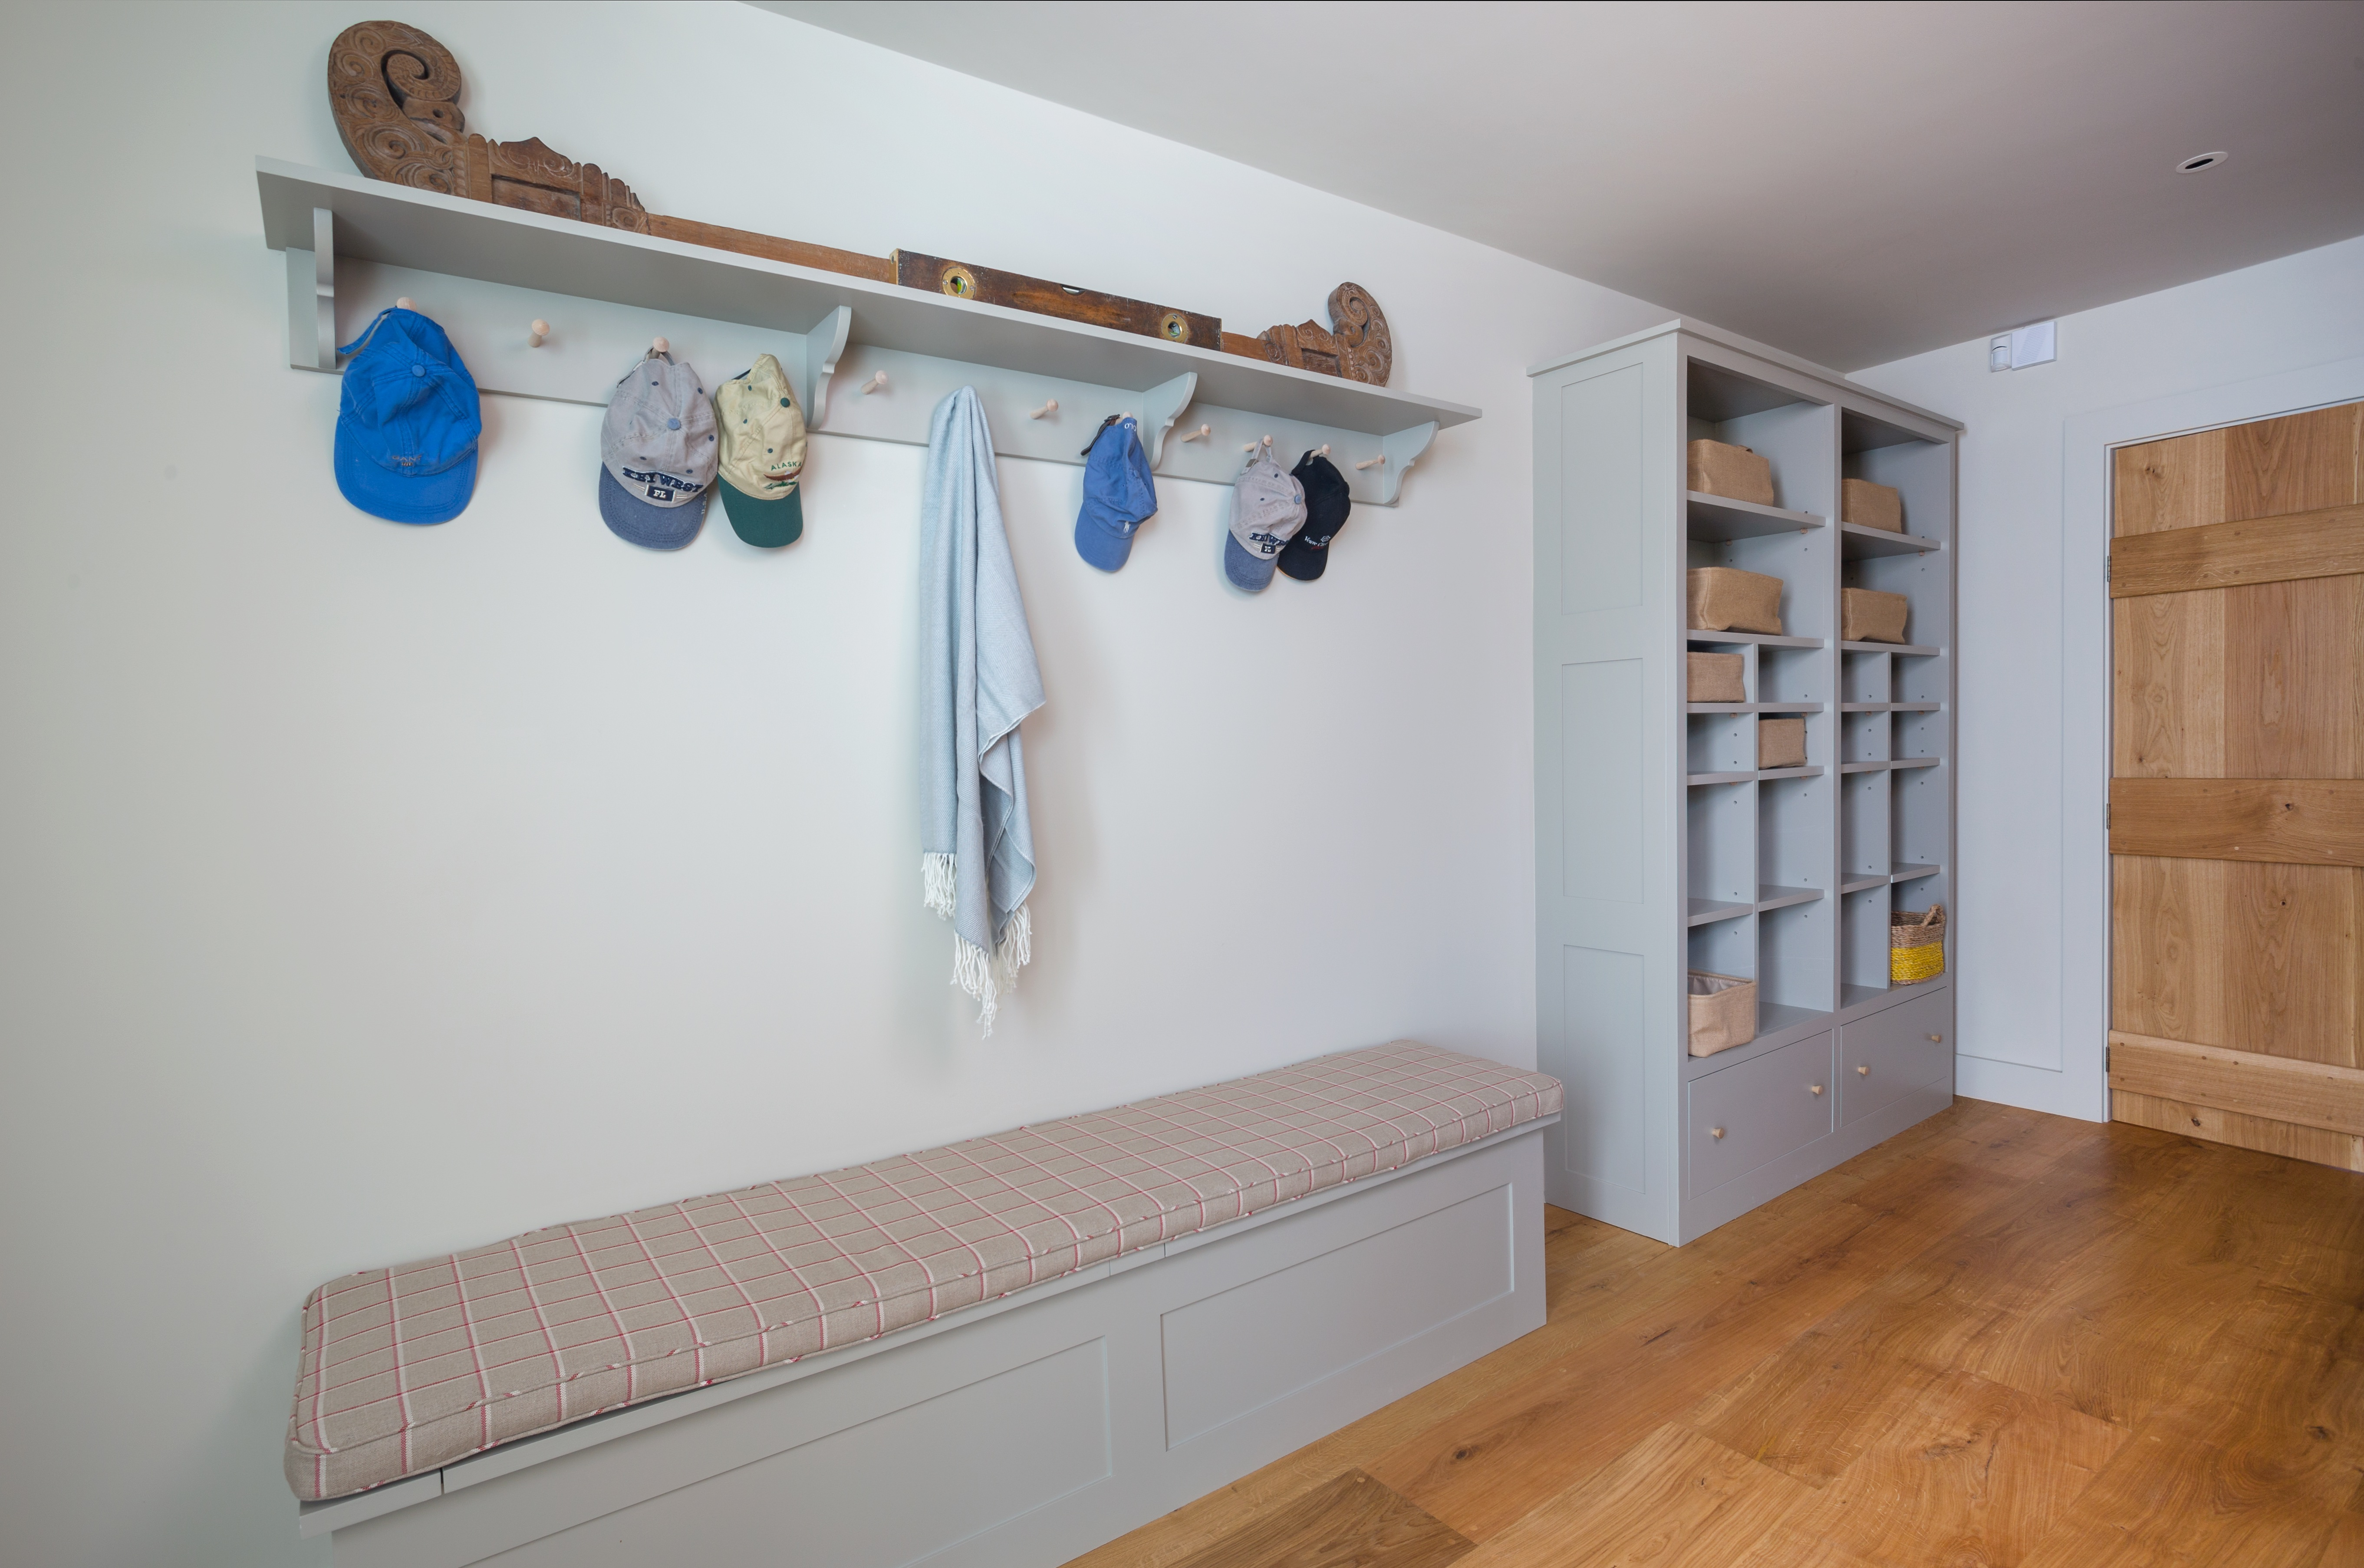 Bespoke shaker boot room storage shelves with oak handles and bench with peg rack all painted in Farrow & Ball Hardwick.